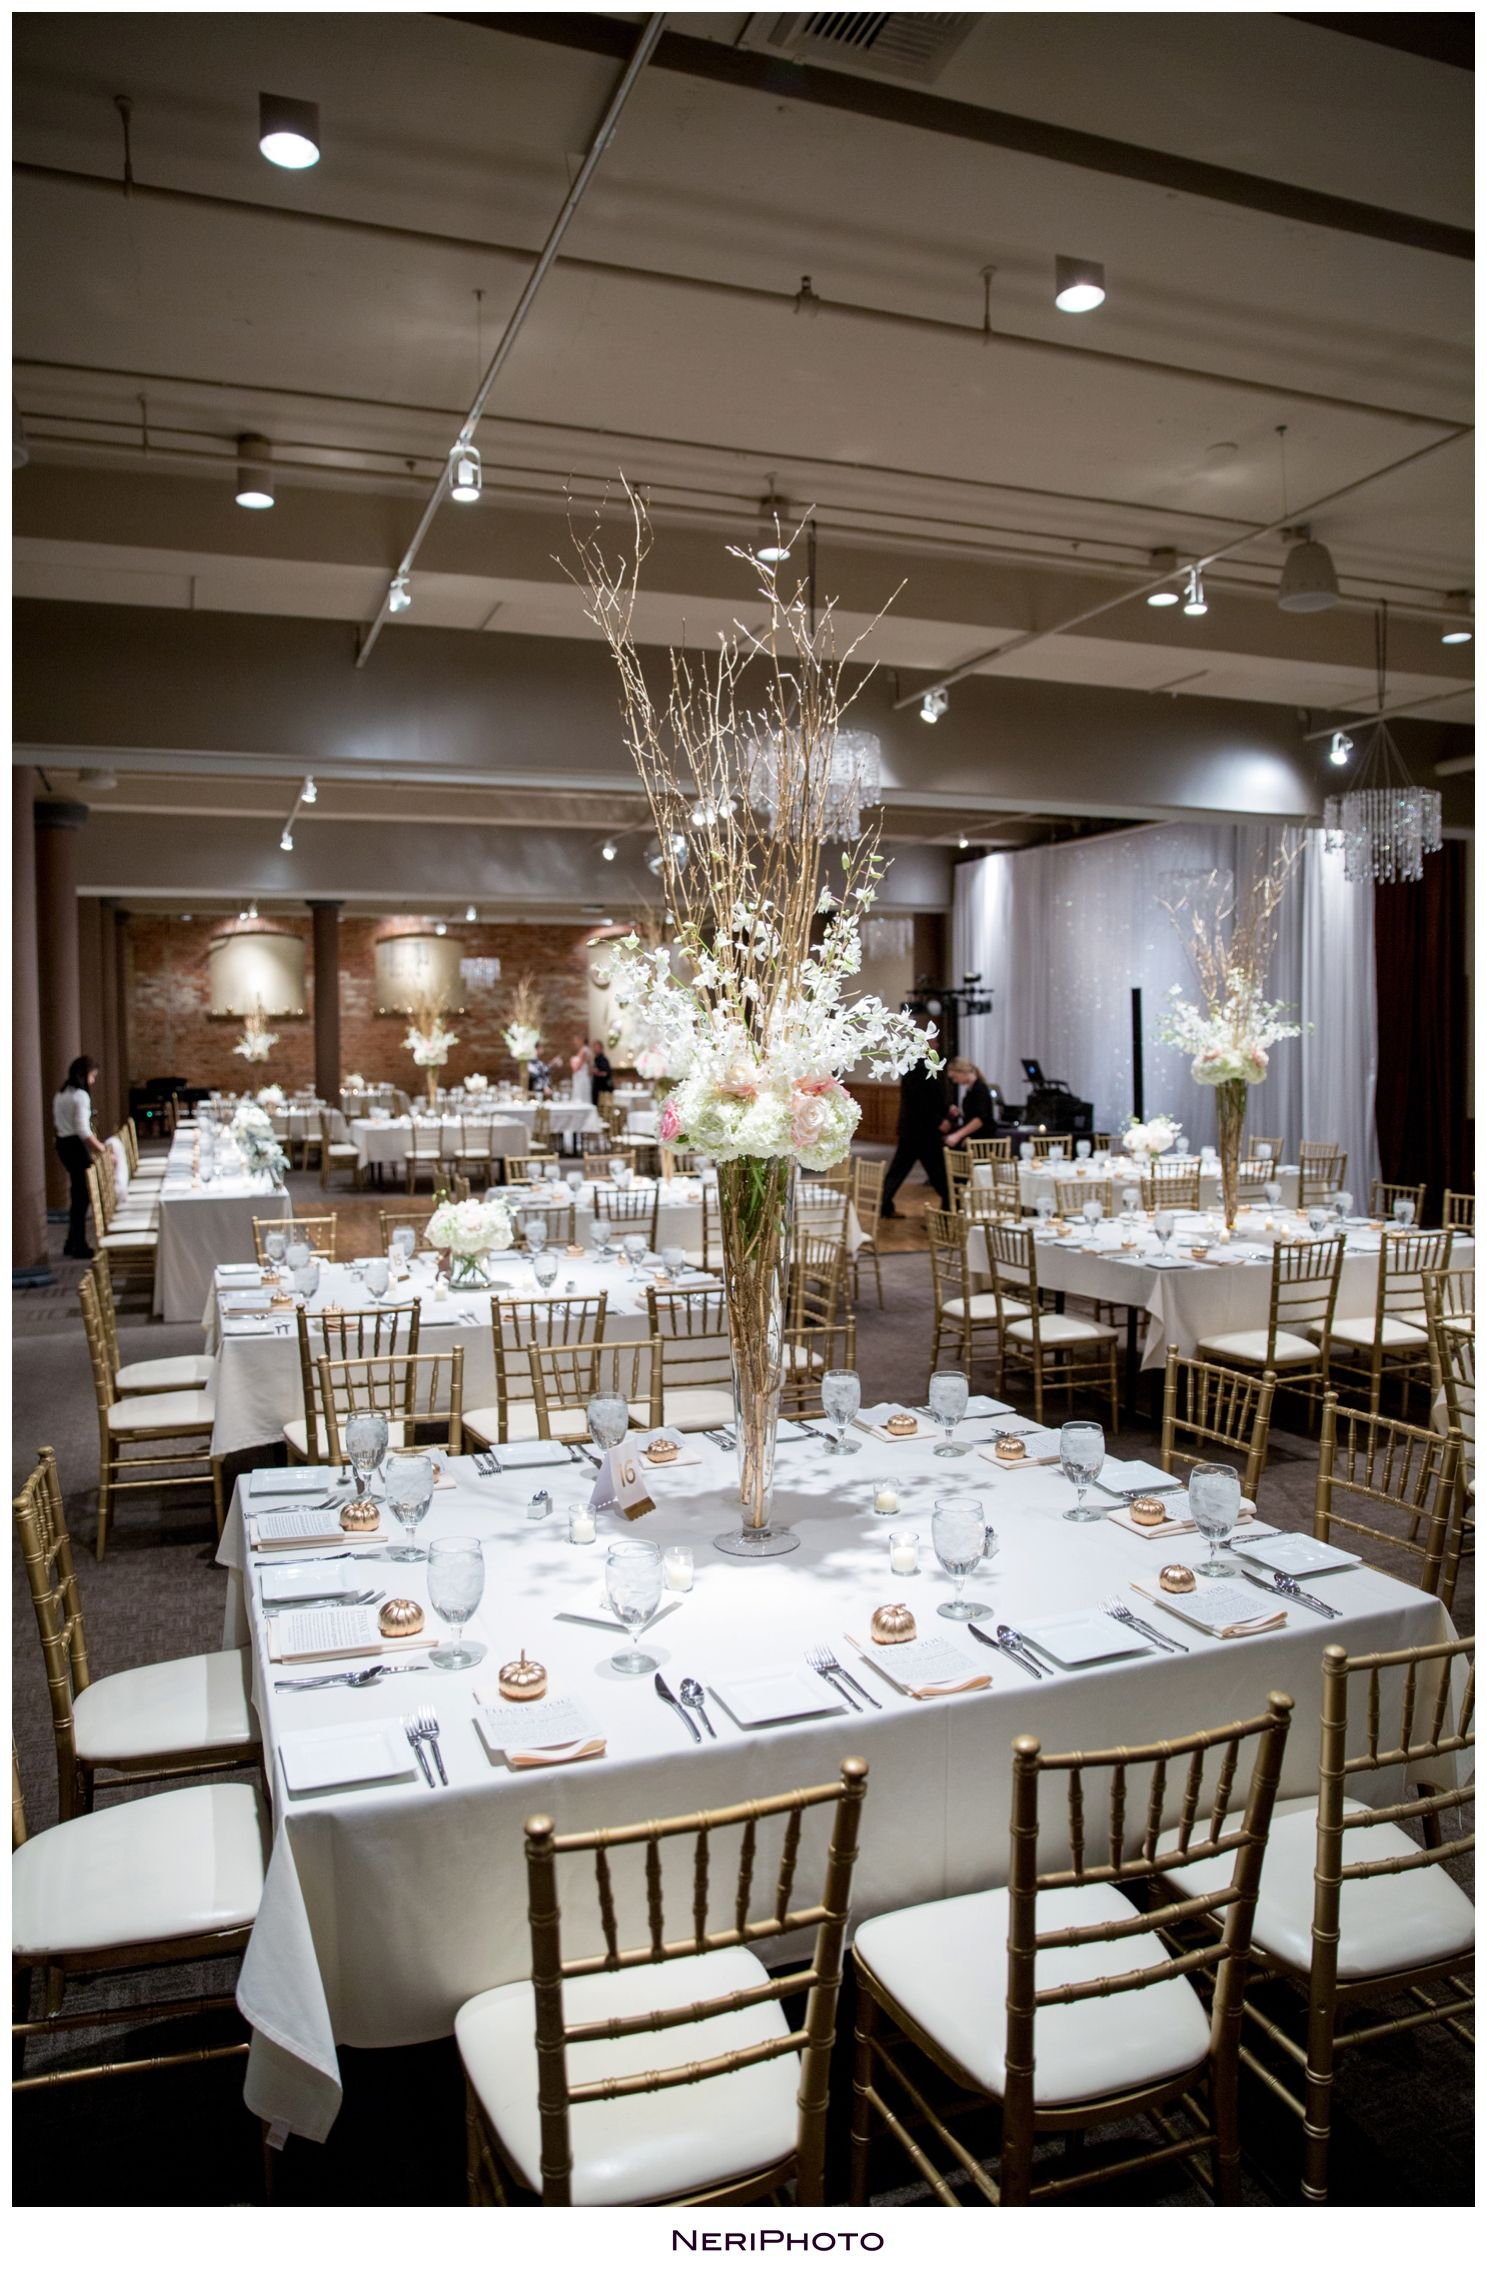 Cityscapes Events Wedding In Kalamazoo Michigan By Neriphoto Www Neriphoto Com Winter Wedding Michigan Wedding Venues Kalamazoo Michigan Michigan Wedding